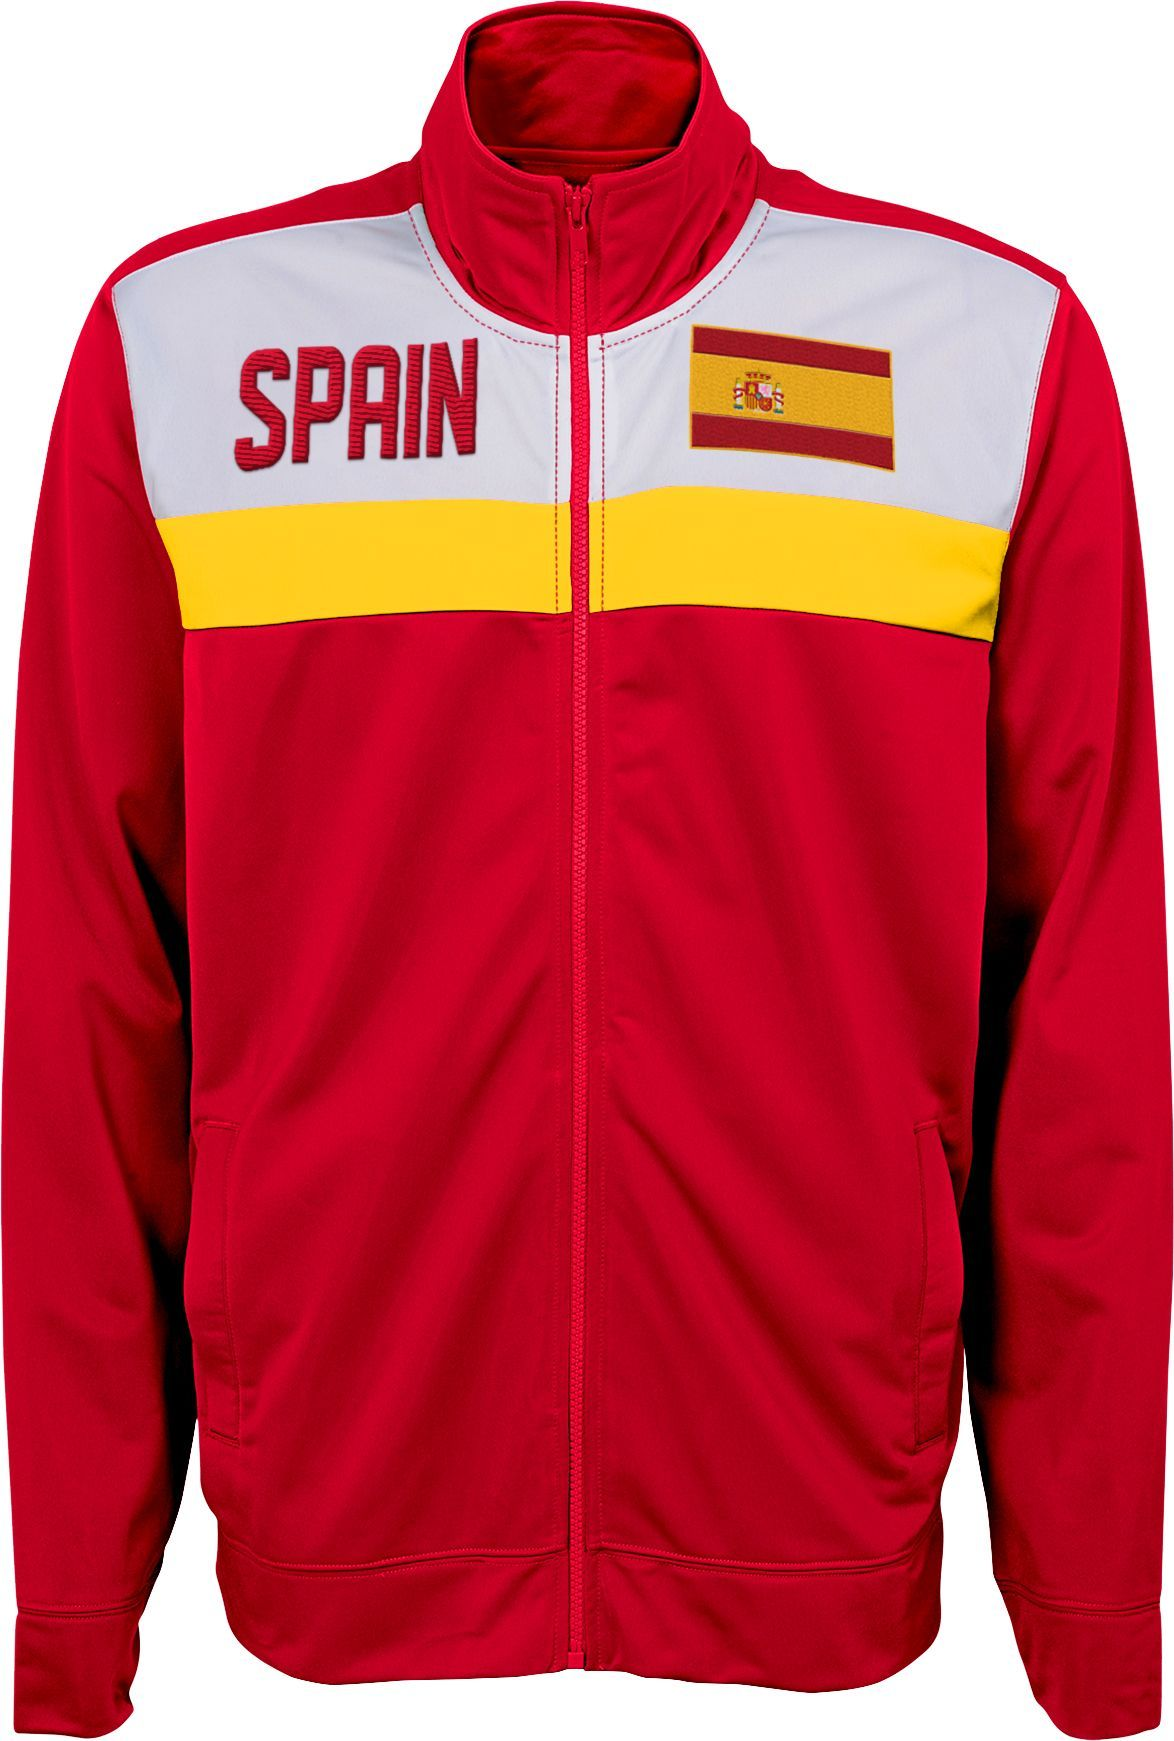 a38f4a83185 Outerstuff Men's 2018 Fifa World Cup Spain Red Track Jacket, Size: XXL,  Multi